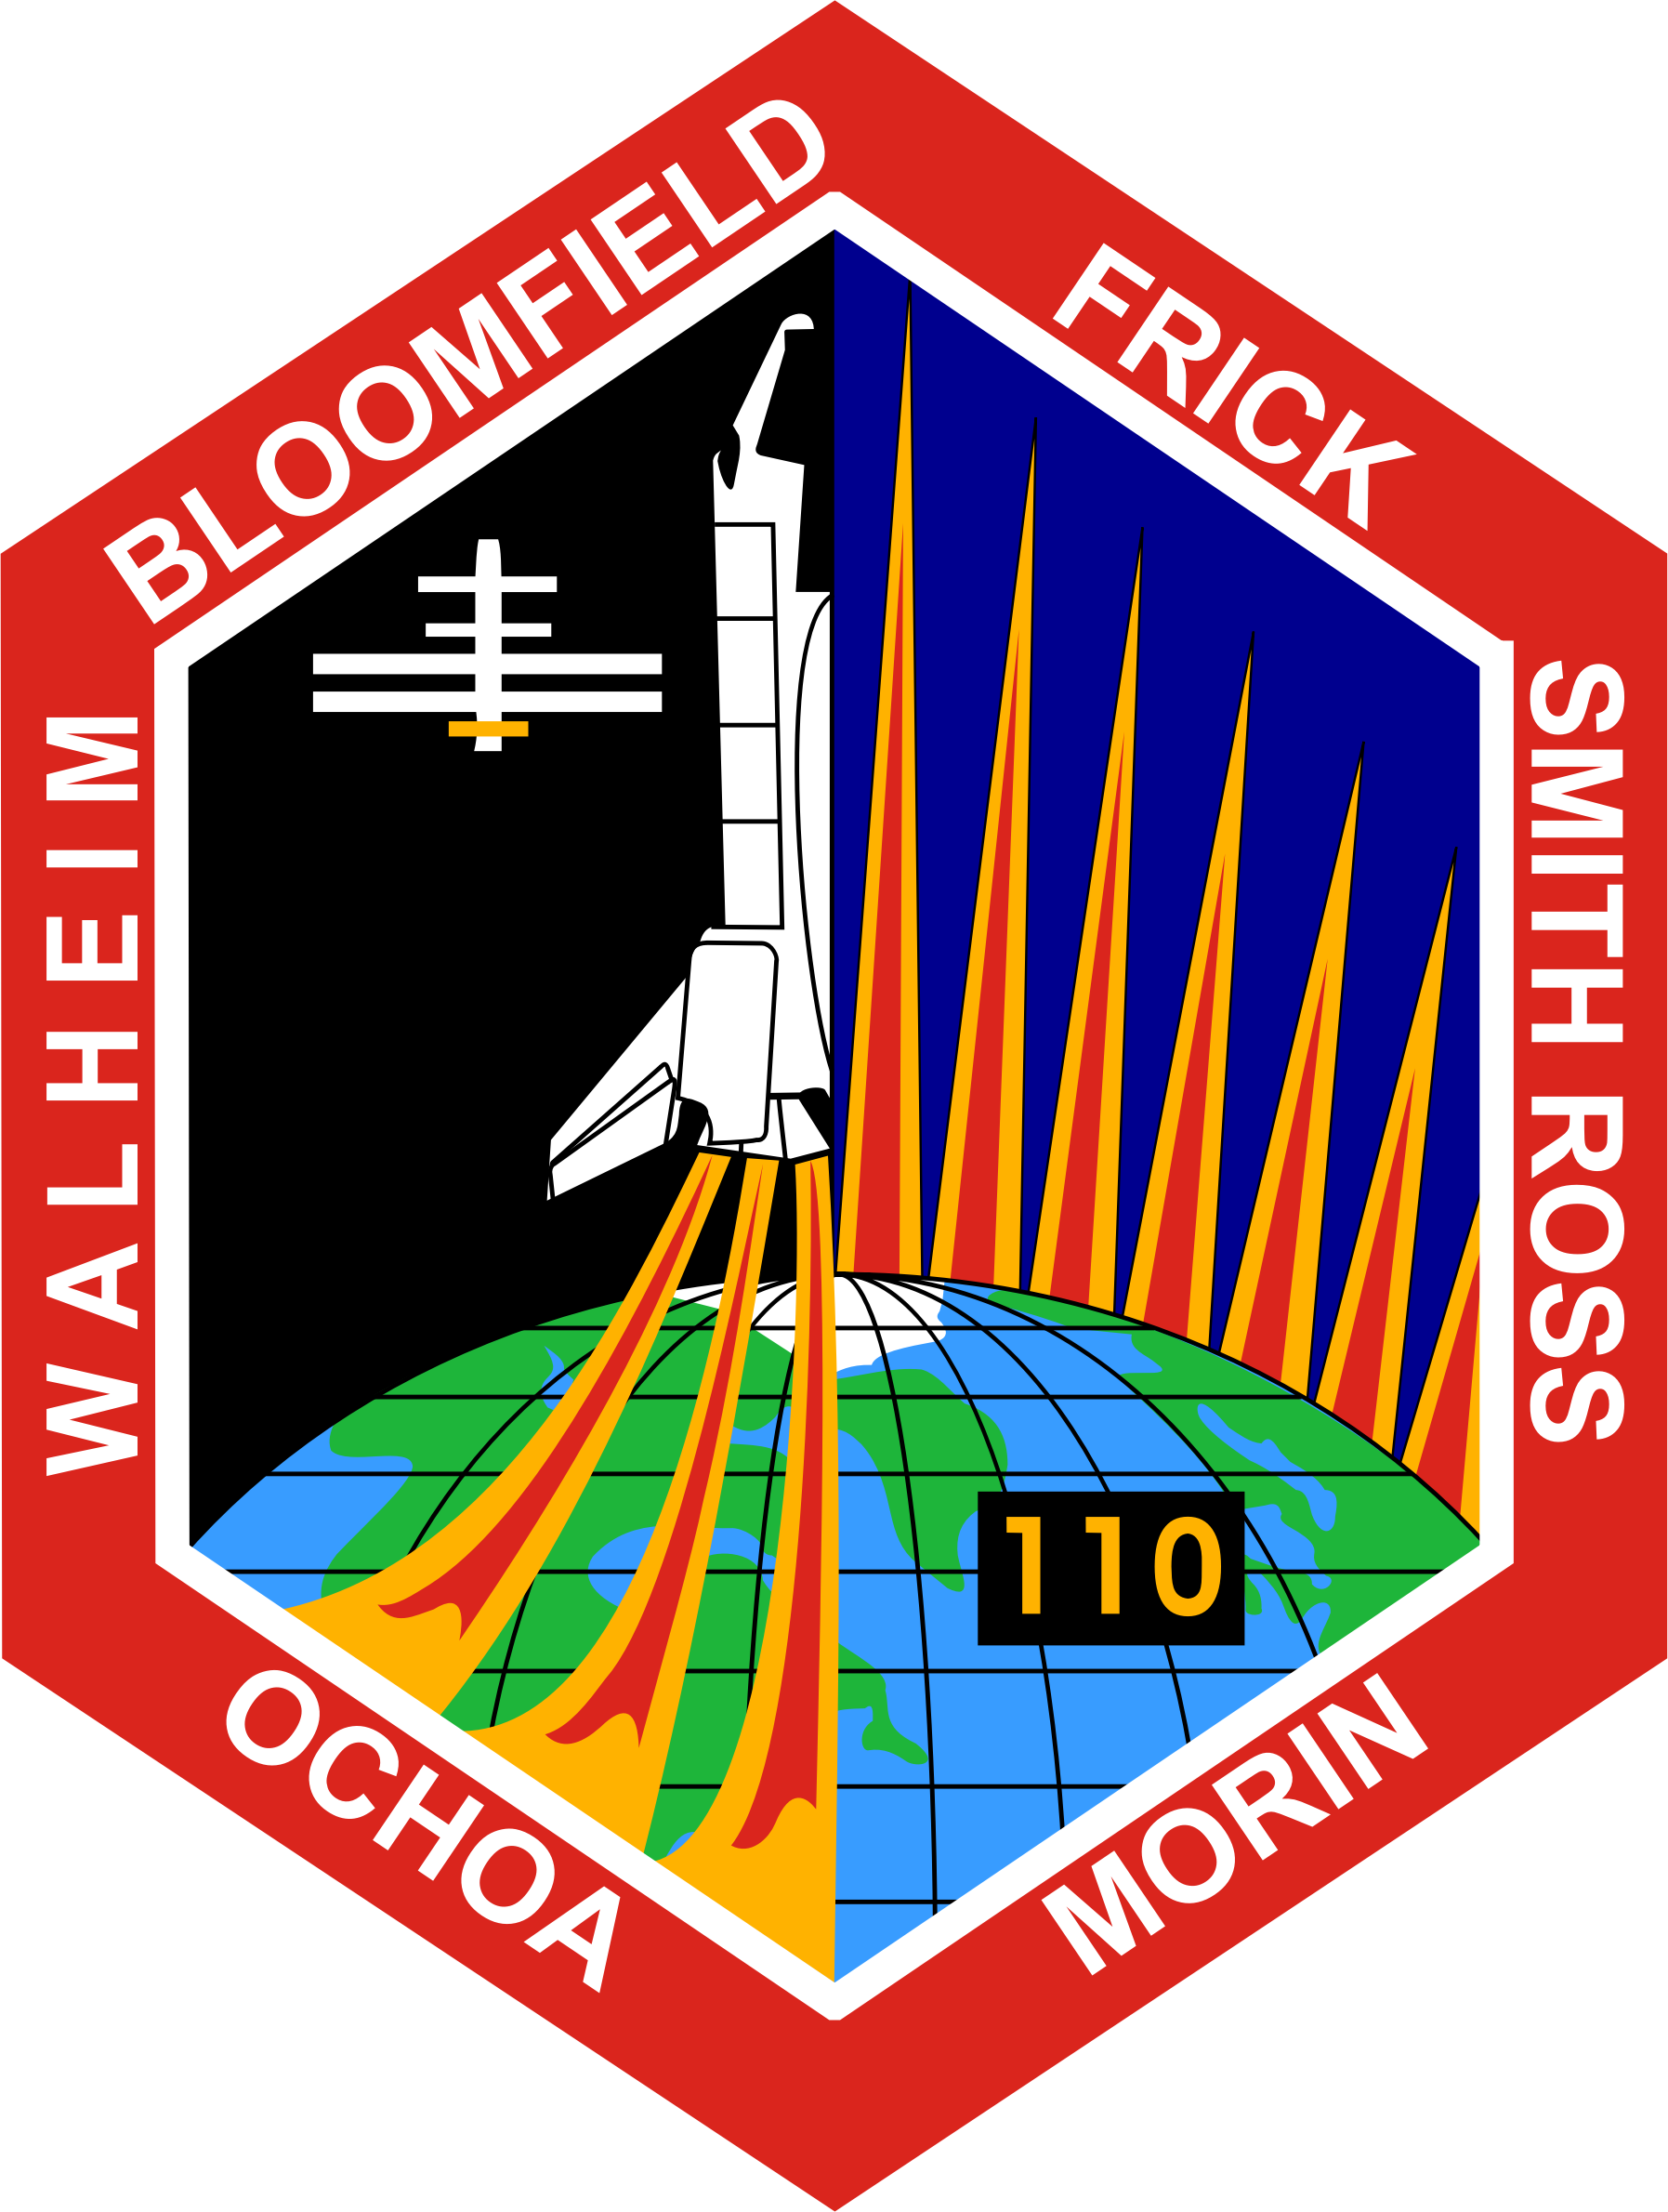 STS-110 Patch by NASA